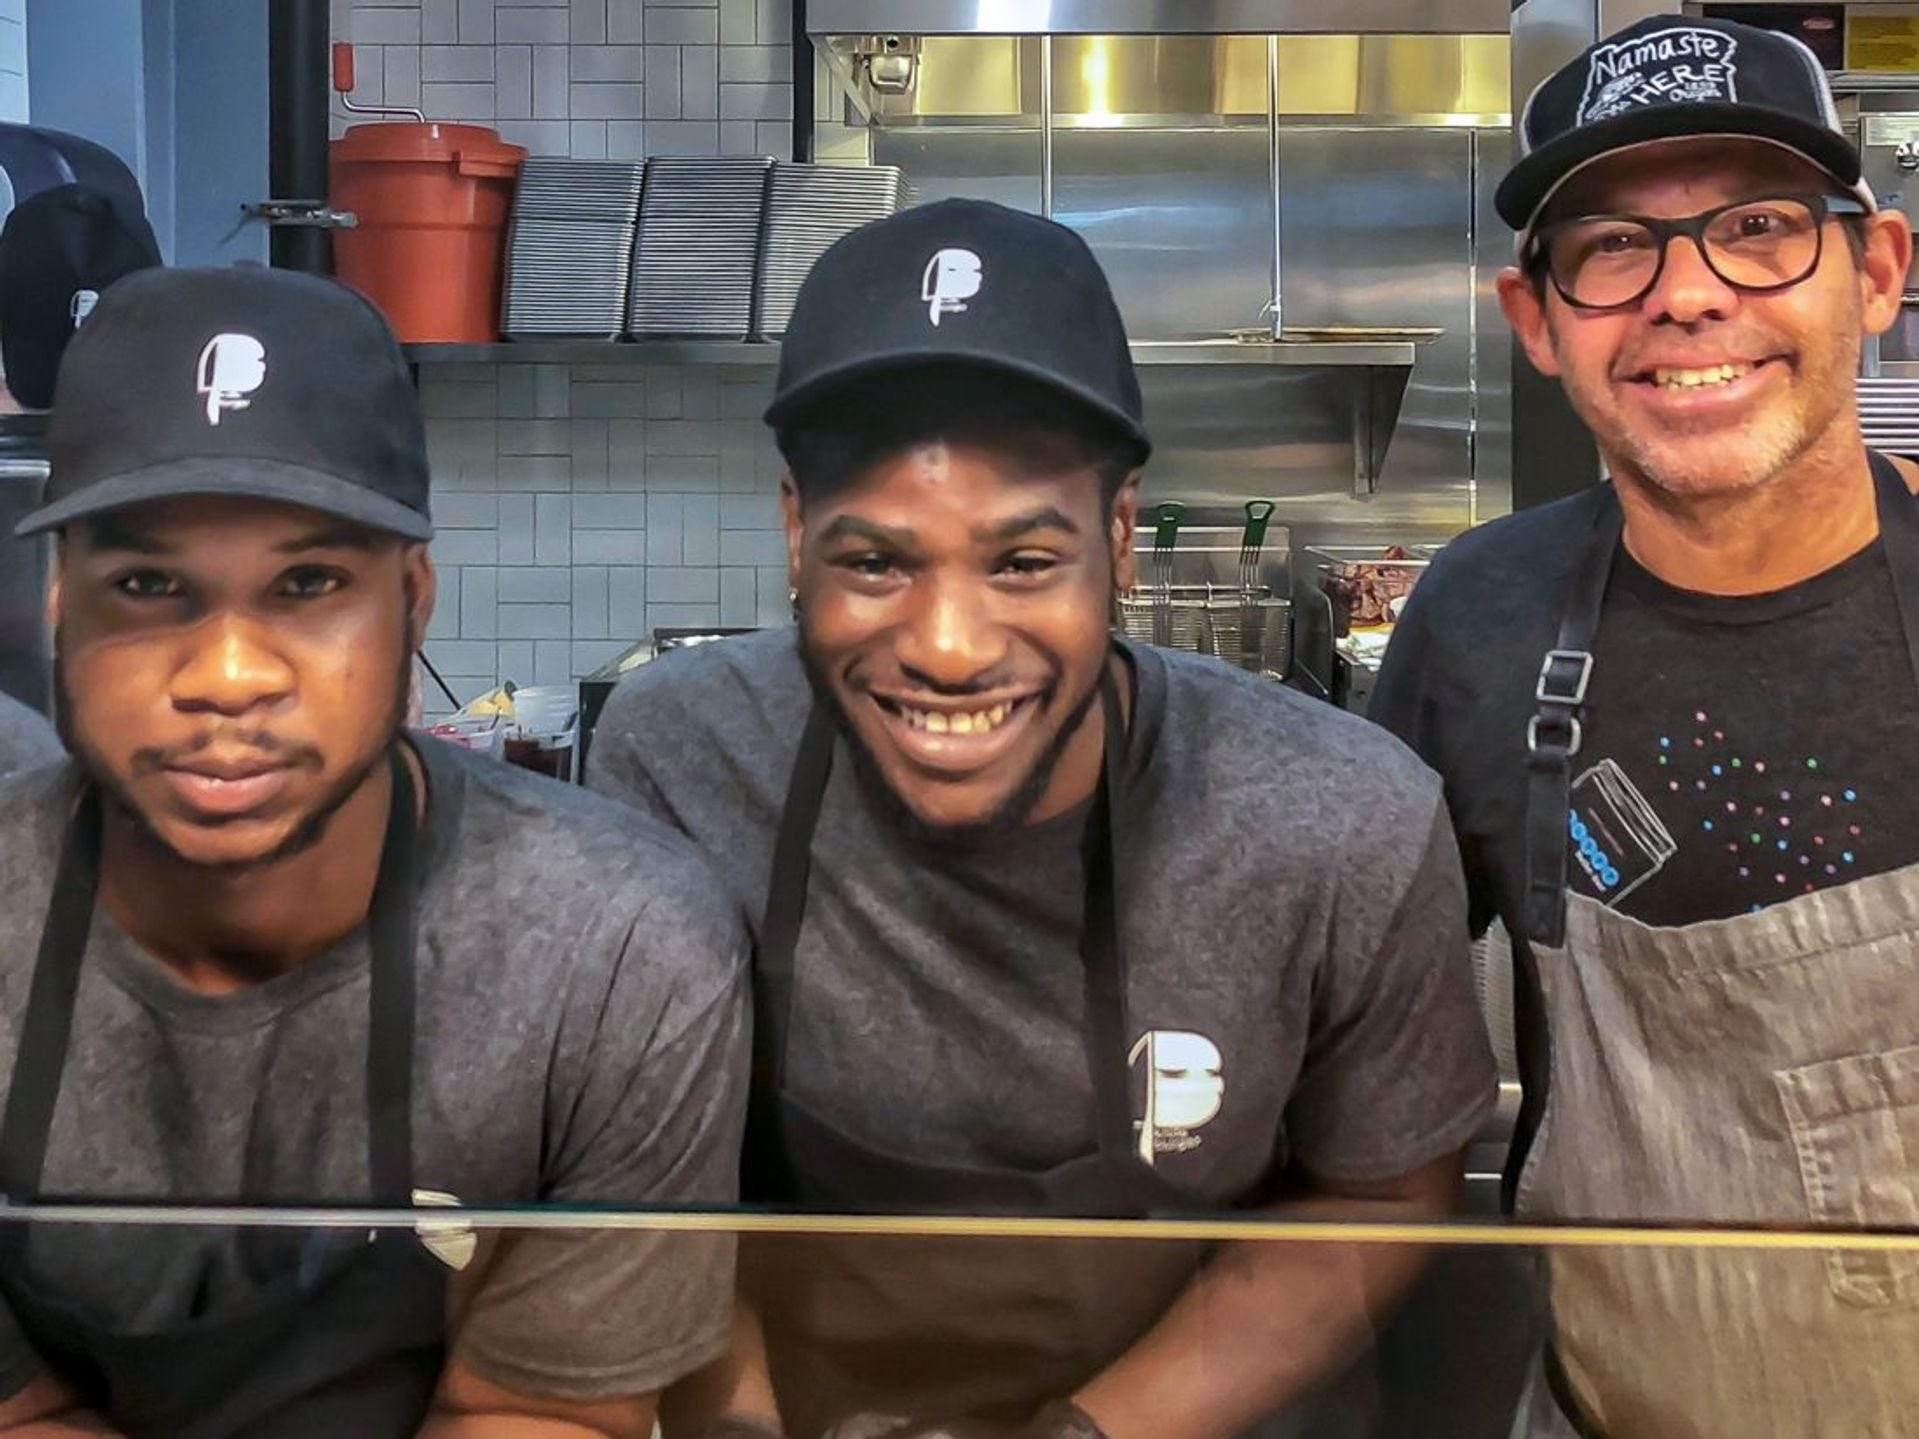 Staff at the original Knife Burger location, including celebrity chef founder John Tesar (right).